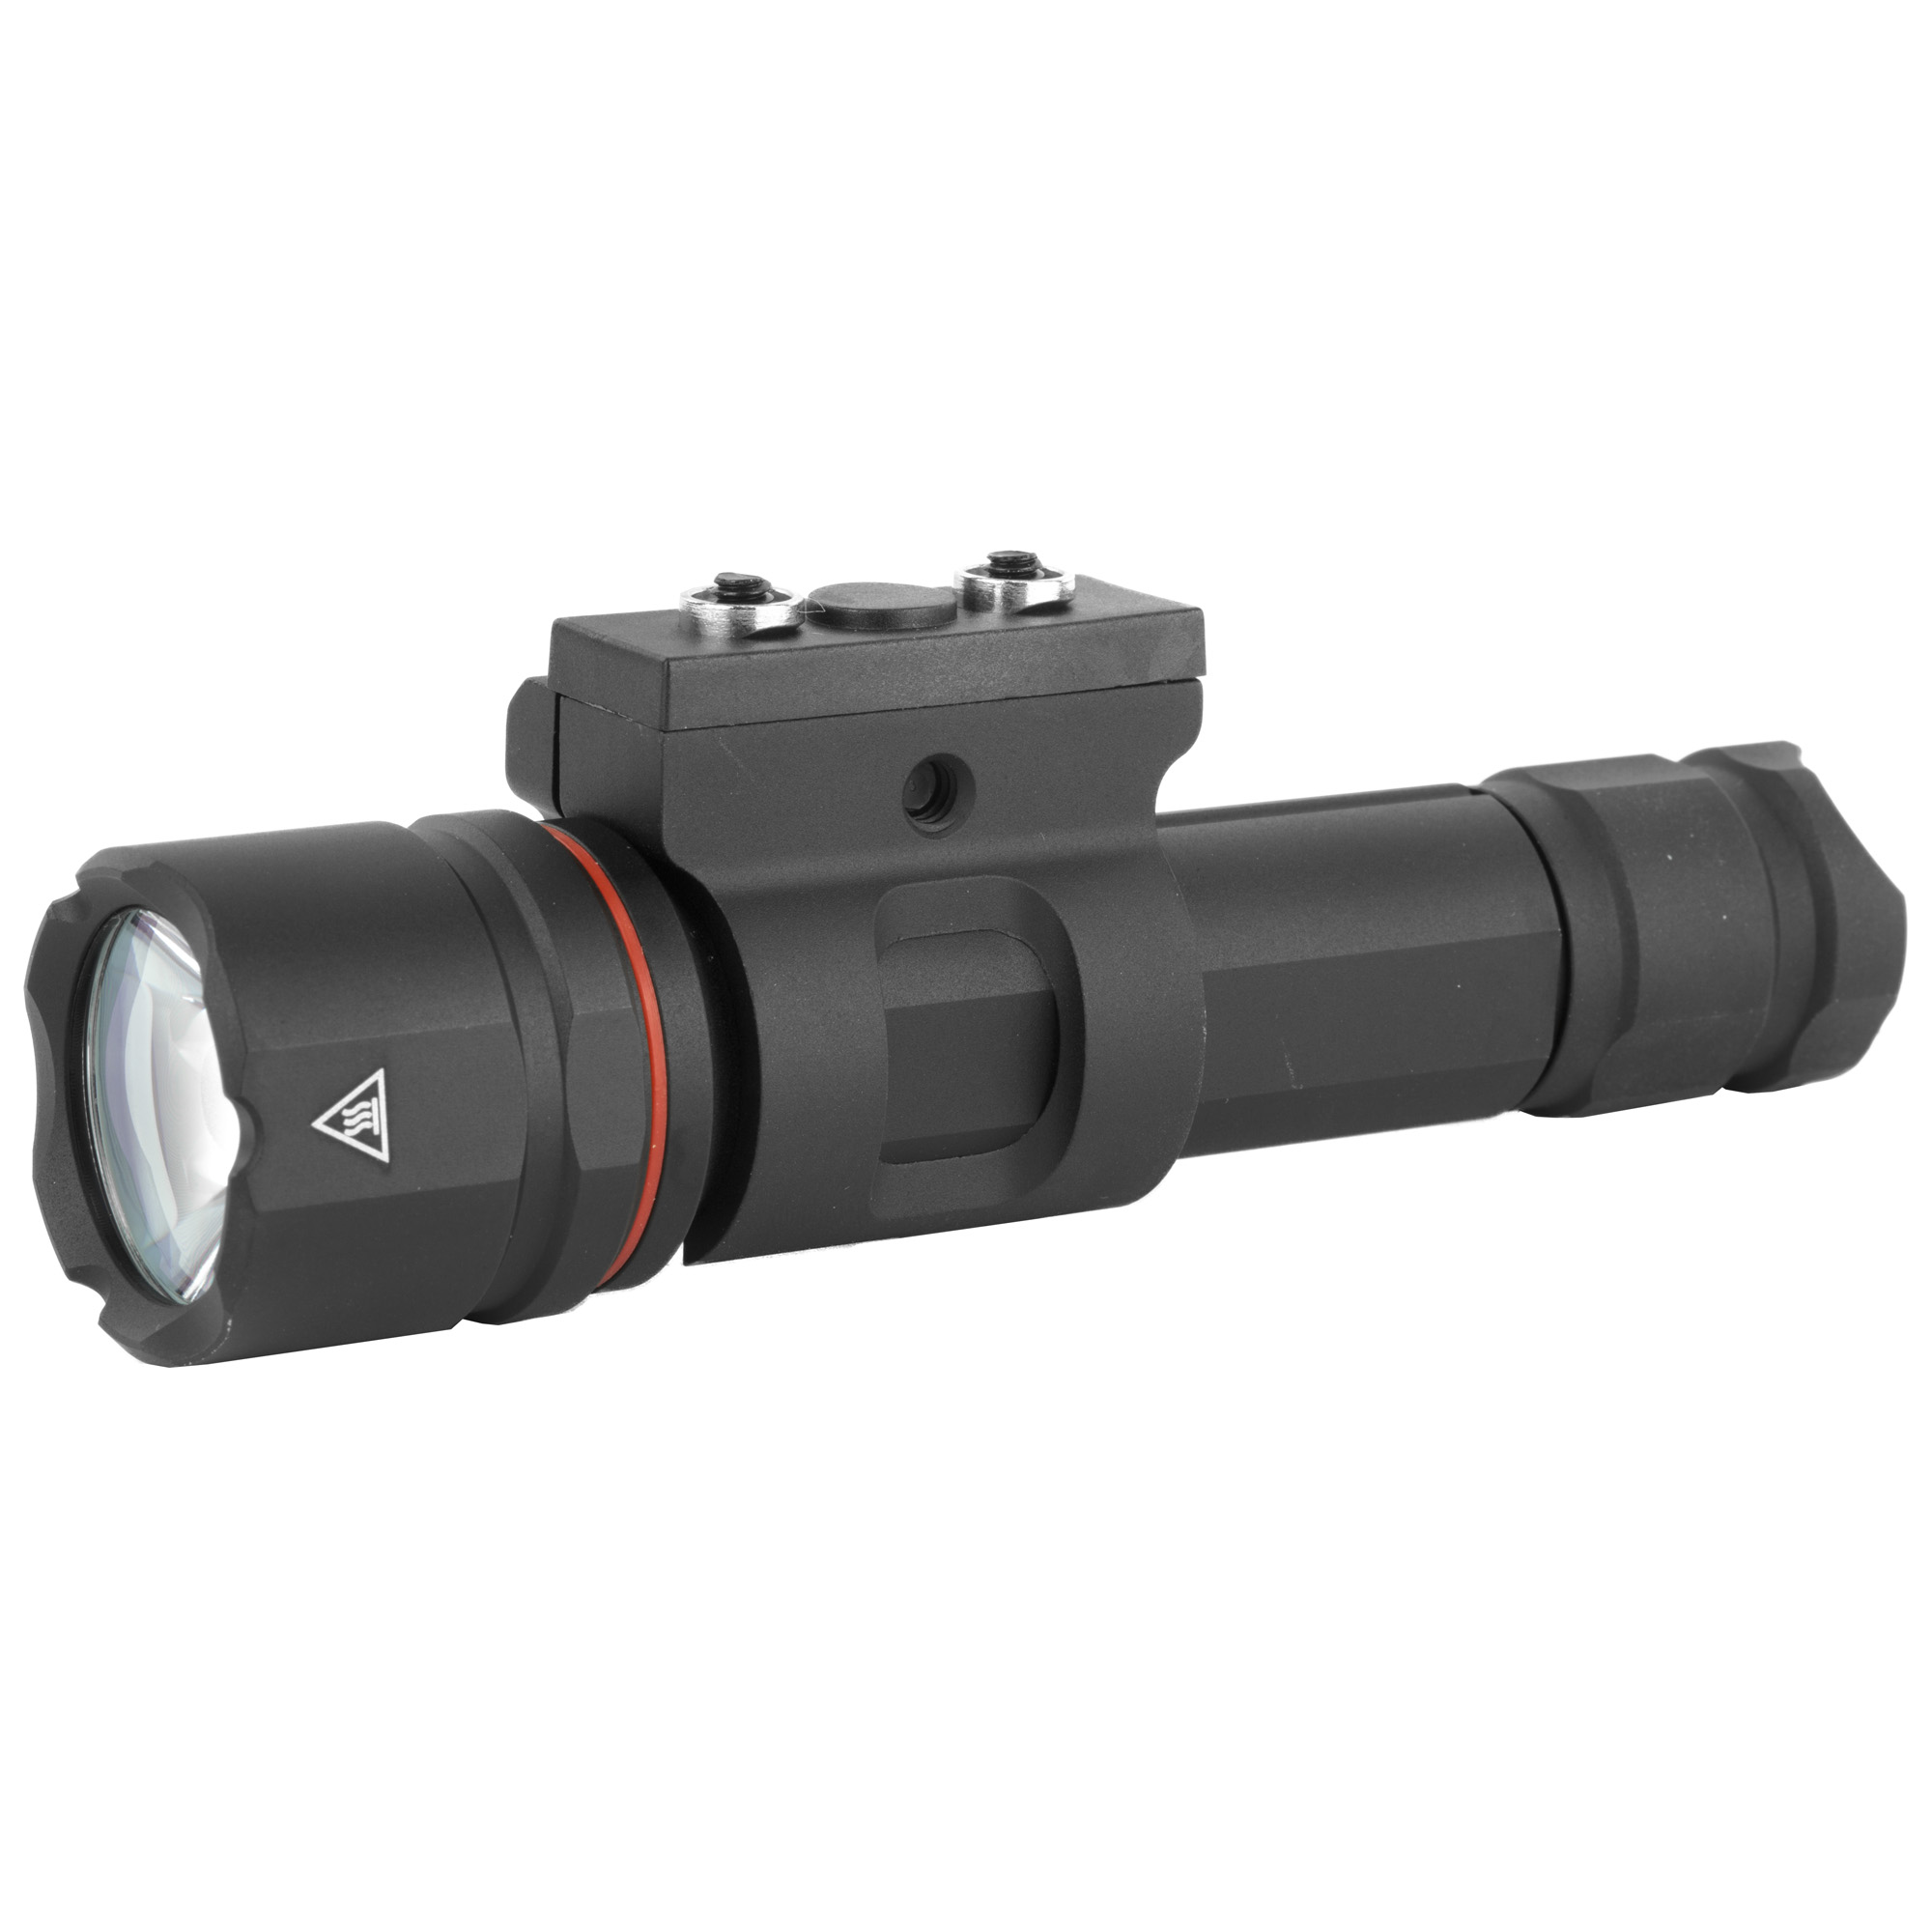 """Experience the power that effective illumination can provide. Introducing Crimson Trace Tactical Lights"""" a best-in-class family of tactical lighting products for rail-adapted long guns"""" backed by the Crimson Trace reputation you trust. The CWL-200 is a powerful rail-attached tactical light for Picatinny rail-equipped long guns and provides up to 900 Lumens of white light."""